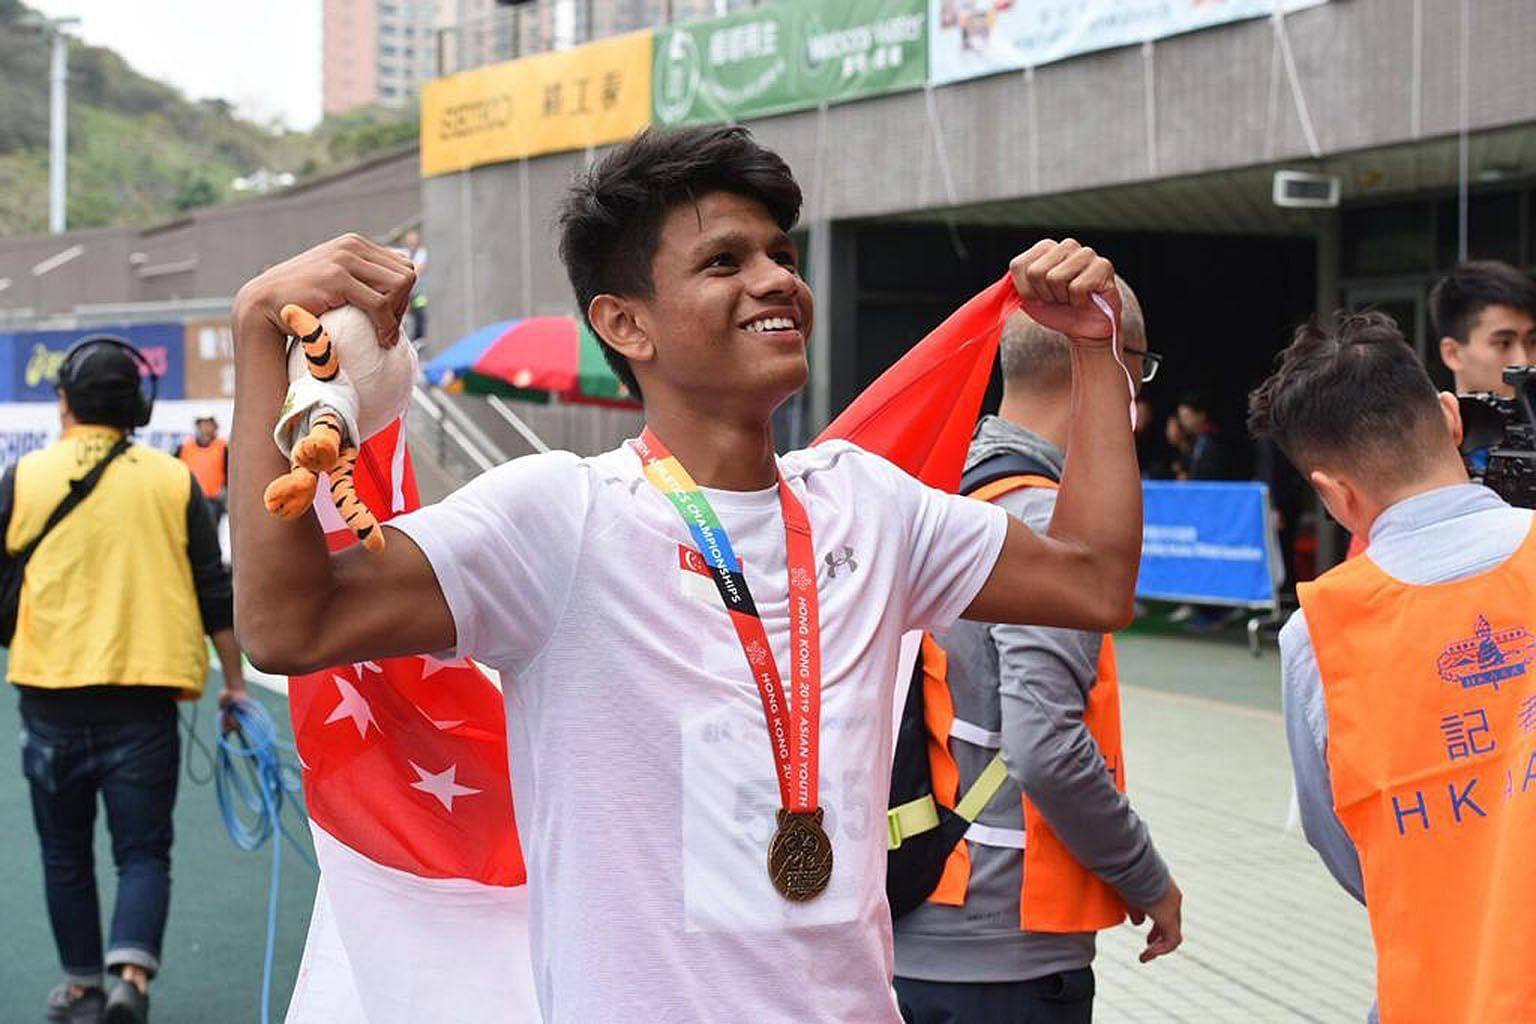 Nurturing budding athletes like Marc Brian Louis, the 400m hurdler who won Singapore's first Asian Youth gold last year, will allow Singapore Athletics to shed its negative image and regain public trust.